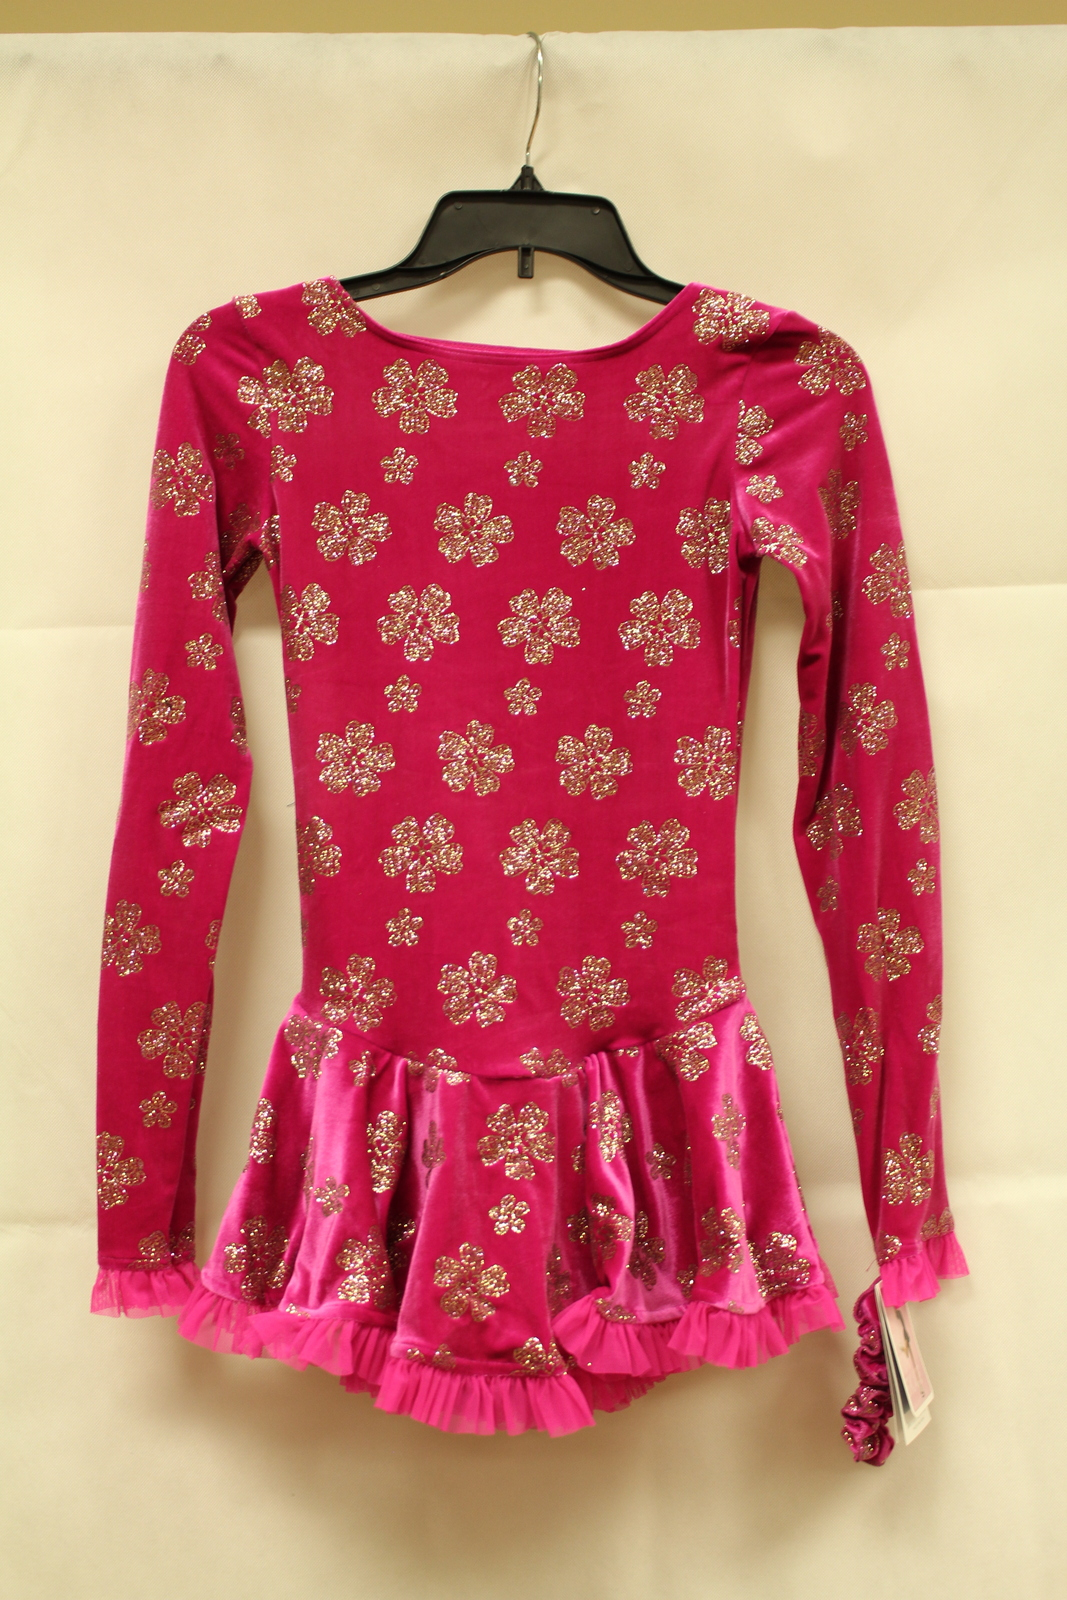 Primary image for Mondor Model 2739 Born to Skate Skating Dress - Pink Sherbet Size Child 10-12